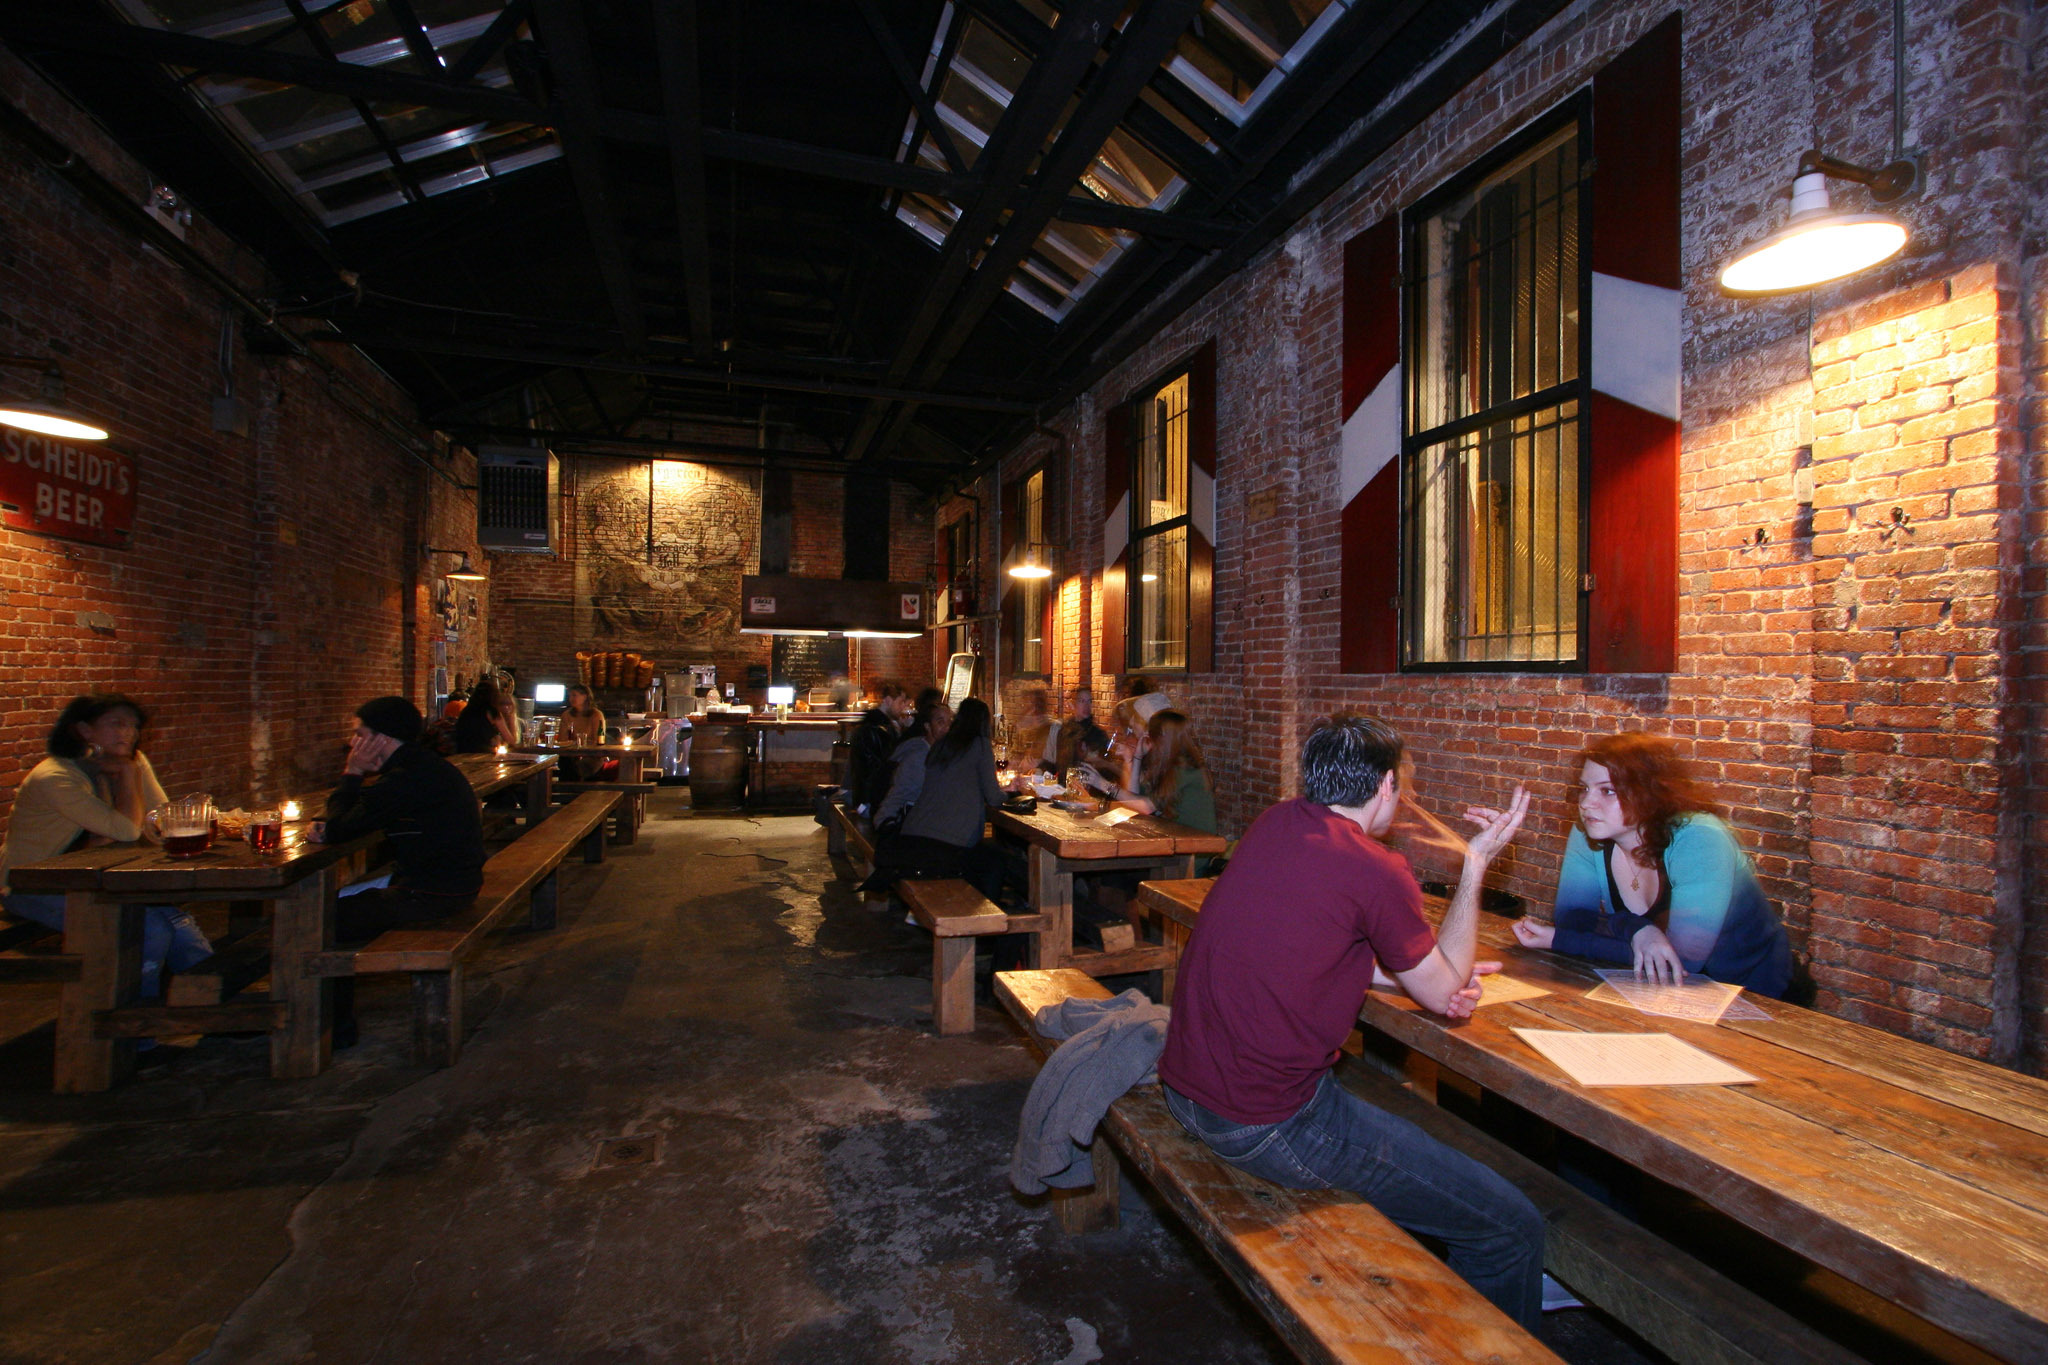 Beer Garten Best Beer Gardens In America For Imported And Craft Beer